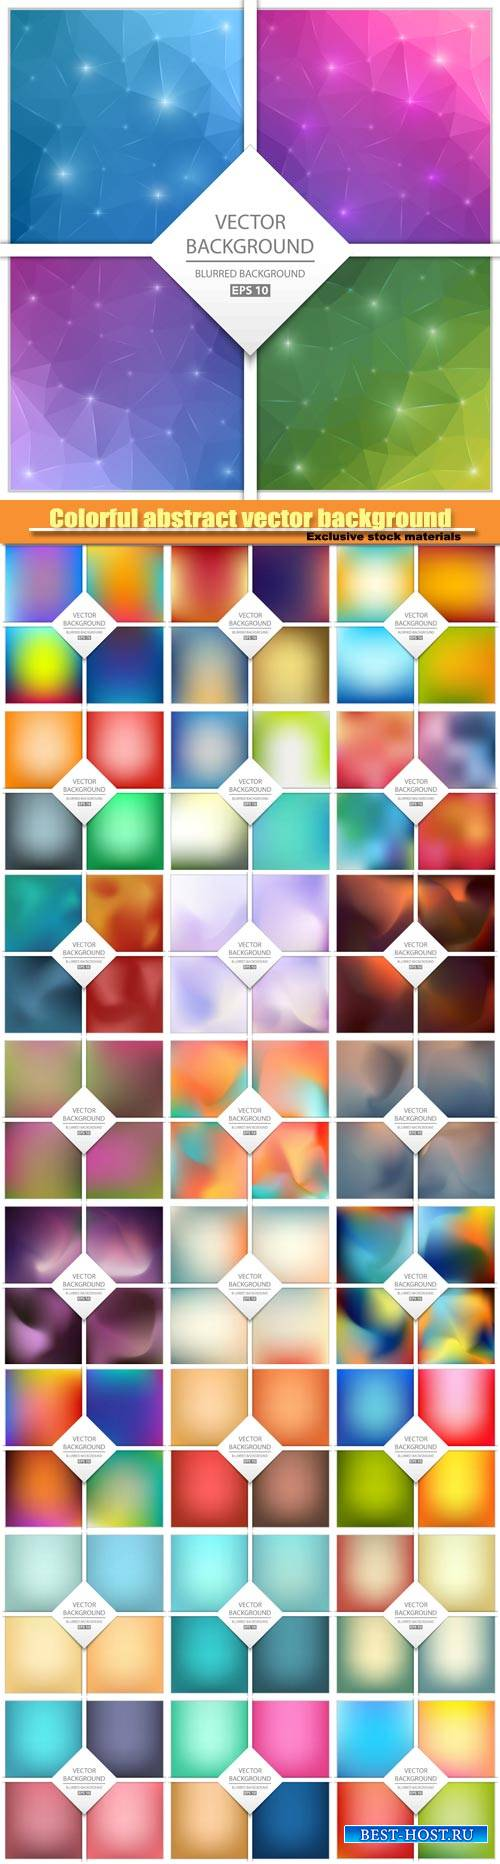 Colorful abstract vector background, art illustration template design